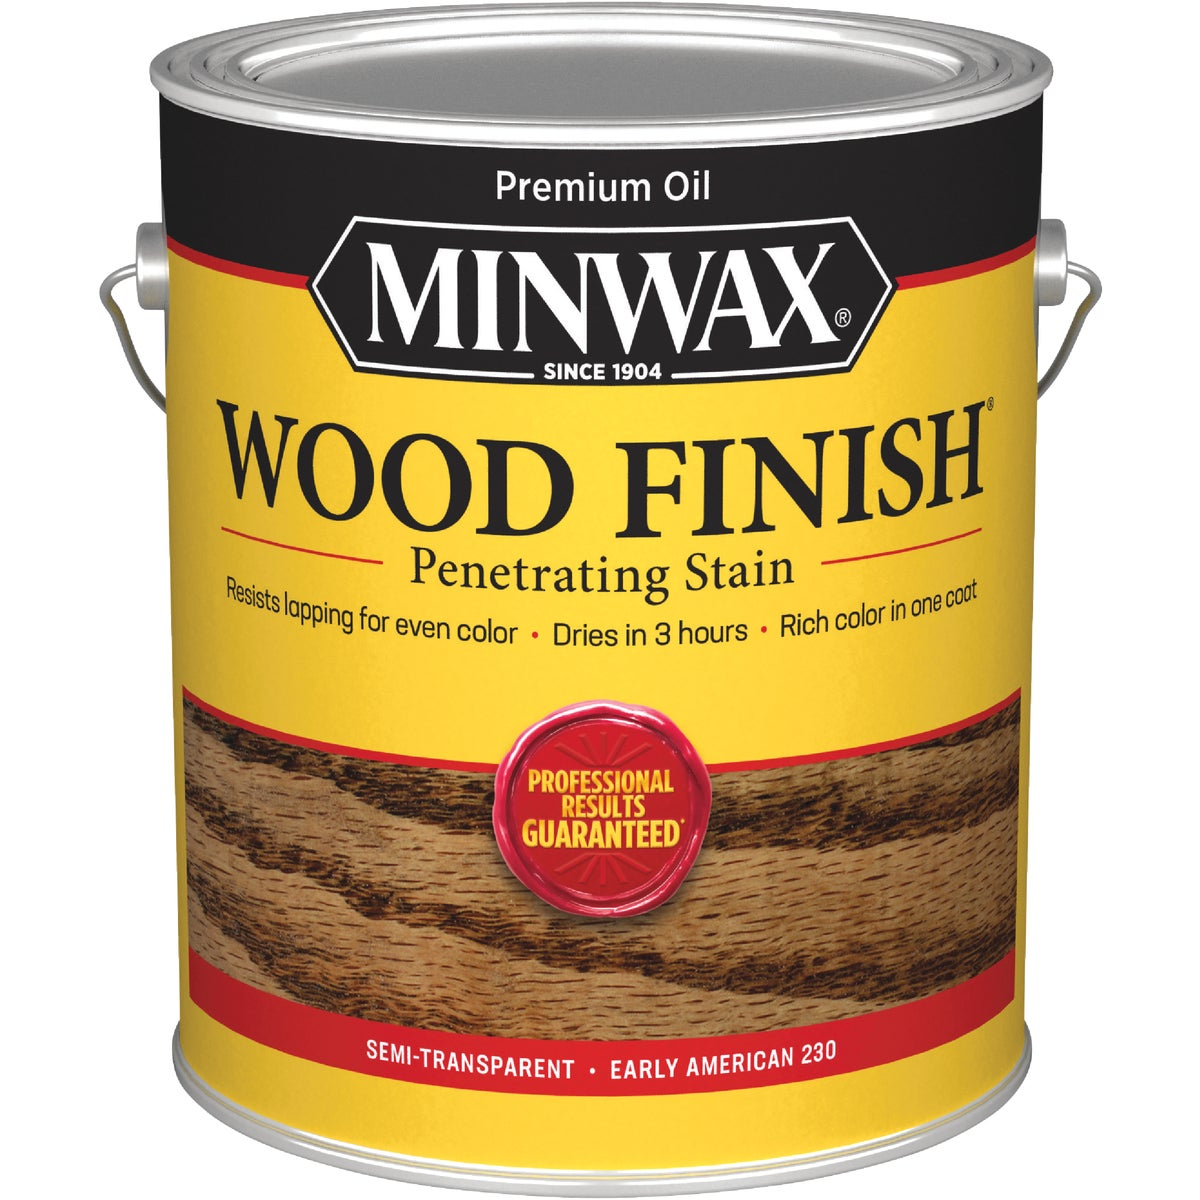 VOC ERLY AMER WOOD STAIN